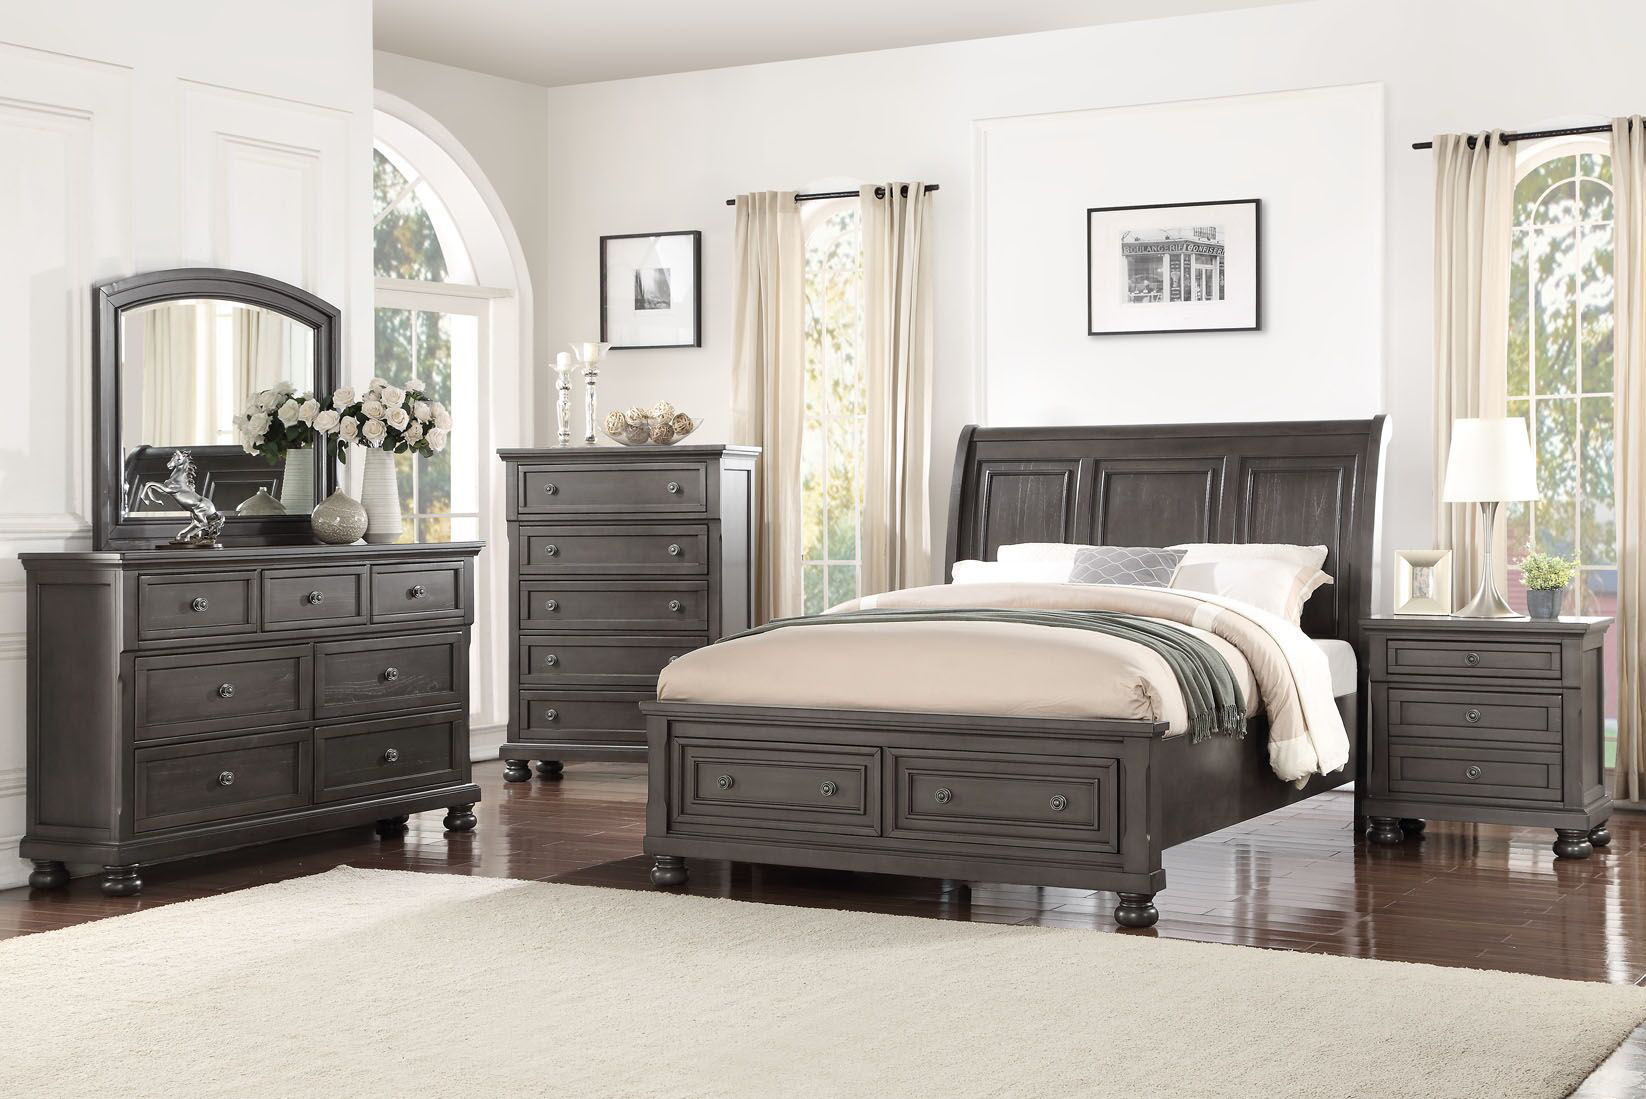 franklin king bedroom set grey 1061